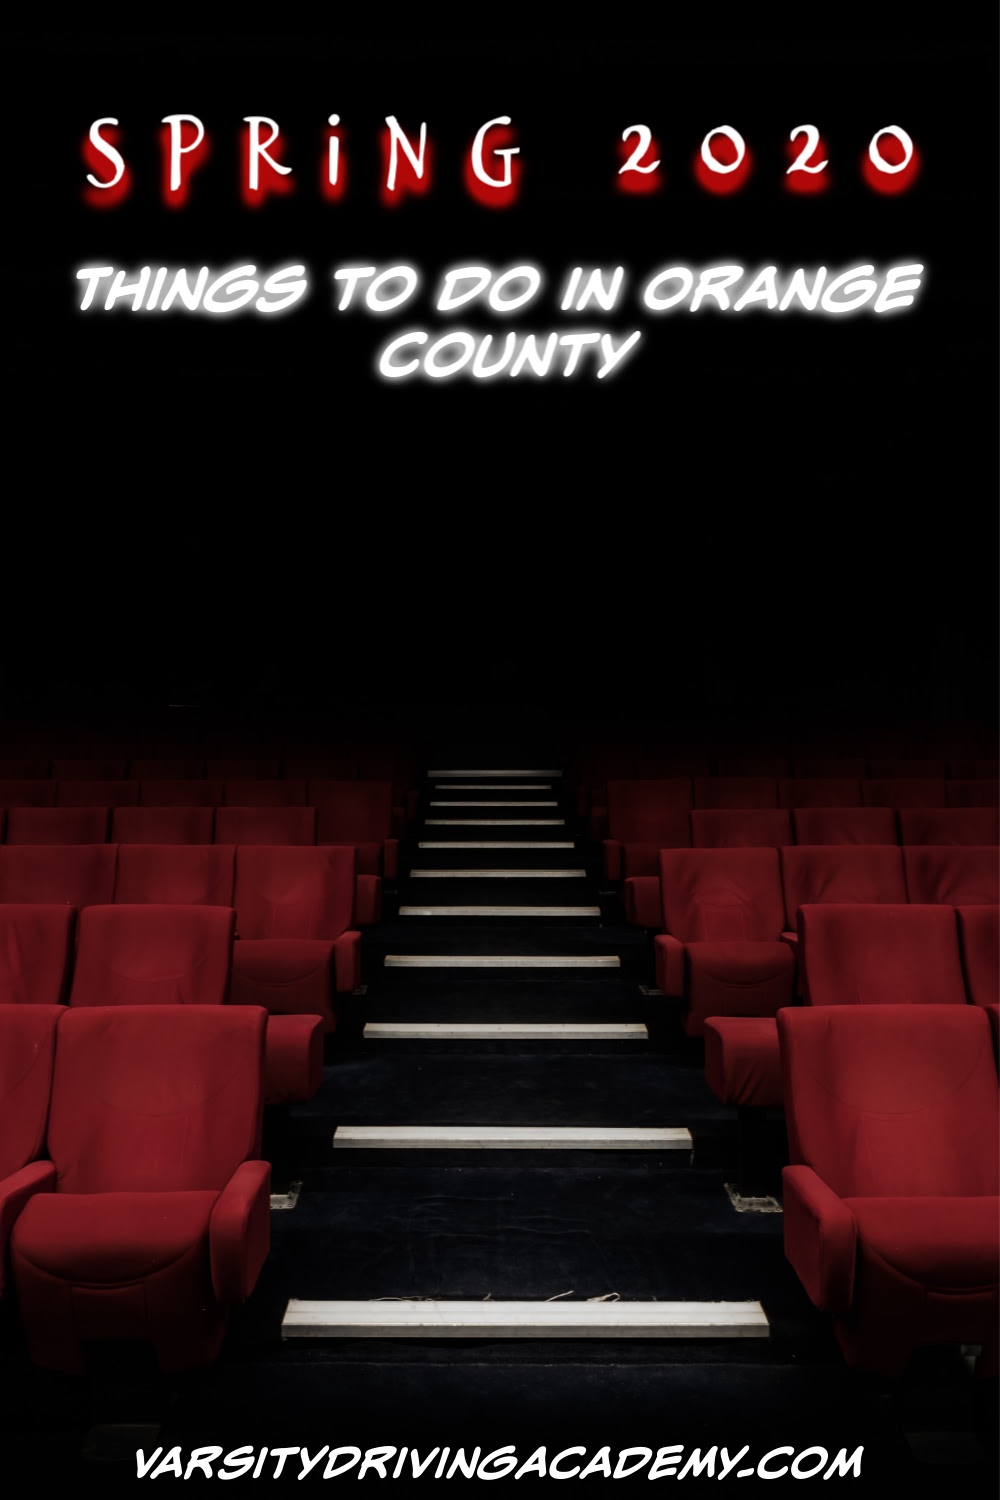 Get ready to experience spring at one of the best spring 2020 things to do in Orange County with family, friends, and neighbors.